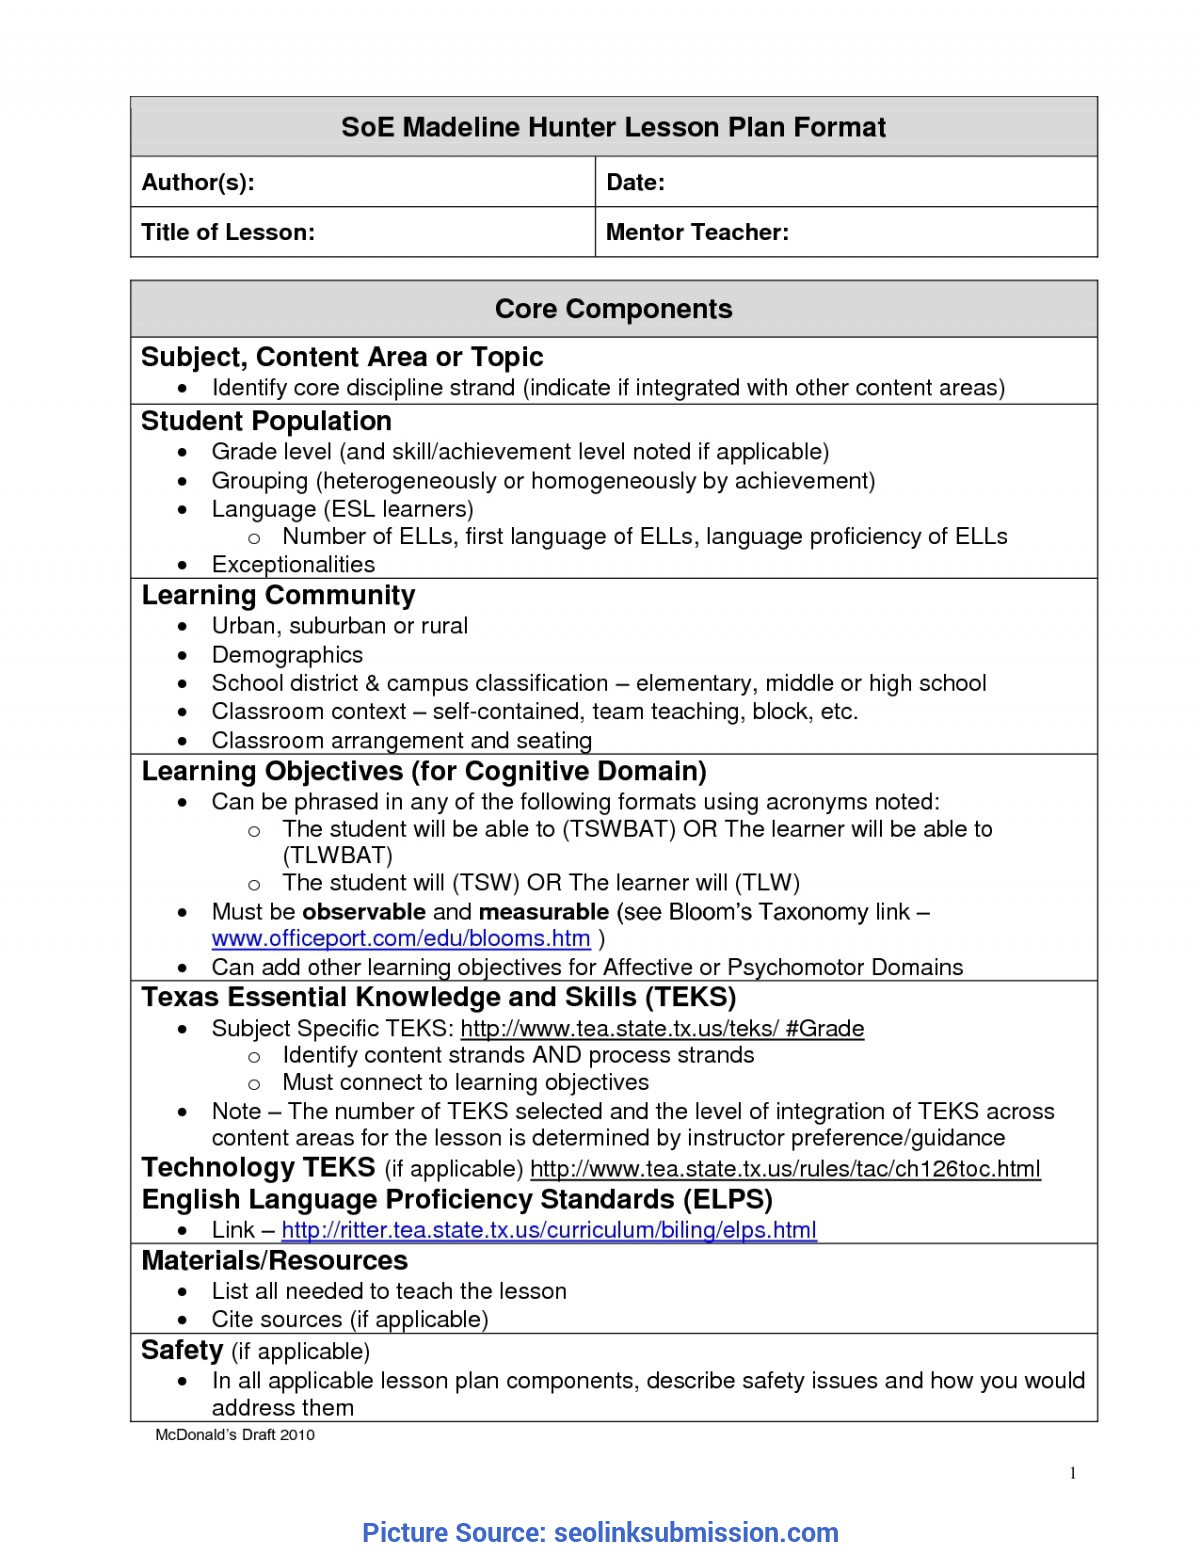 Unusual A Modern Version Of Madeline Hunter Lesson Plan Template For Madeline Hunter Lesson Plan Blank Template